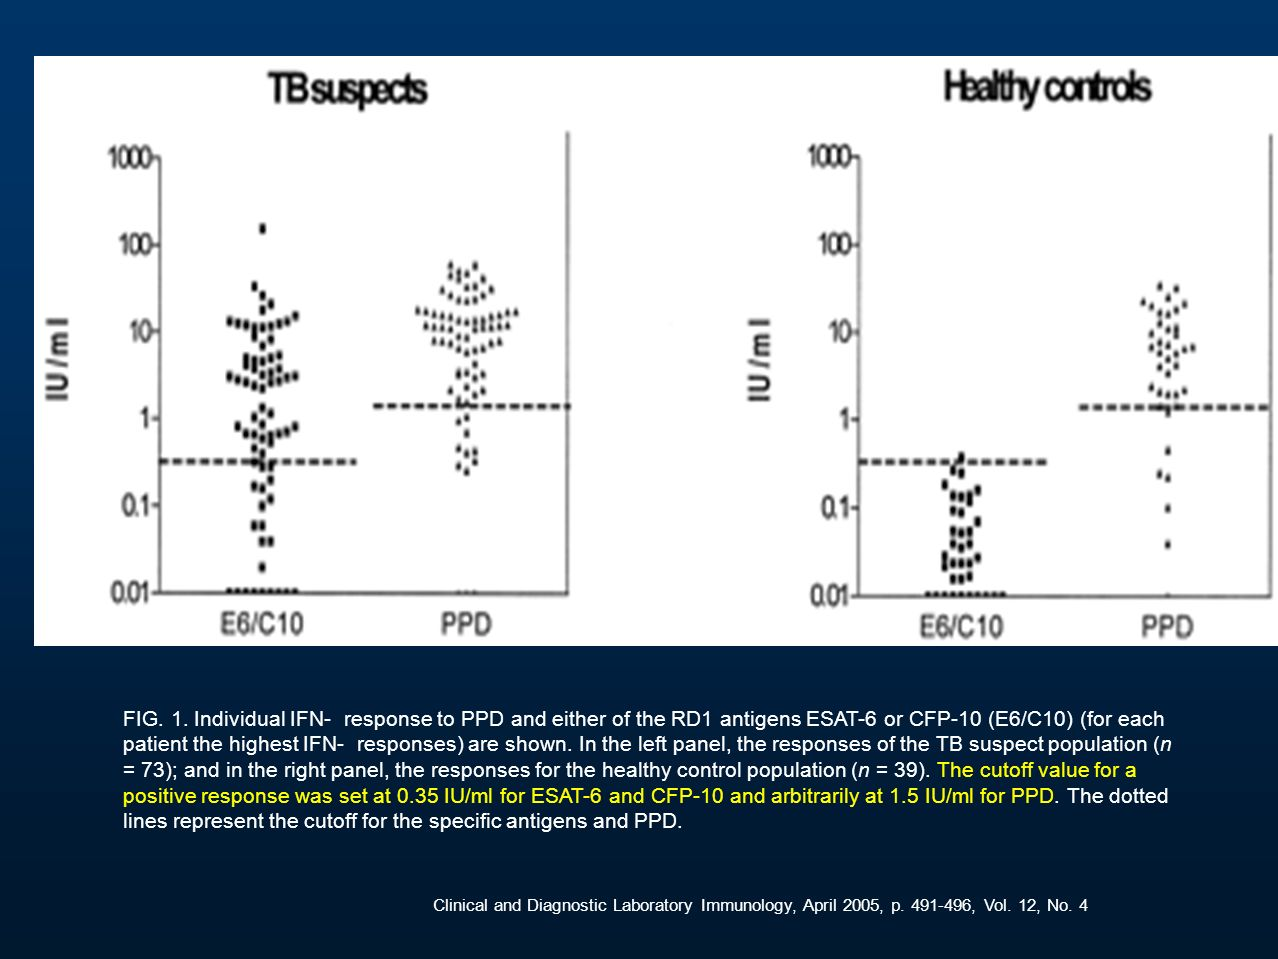 FIG. 1. Individual IFN- response to PPD and either of the RD1 antigens ESAT-6 or CFP-10 (E6/C10) (for each patient the highest IFN- responses) are sho